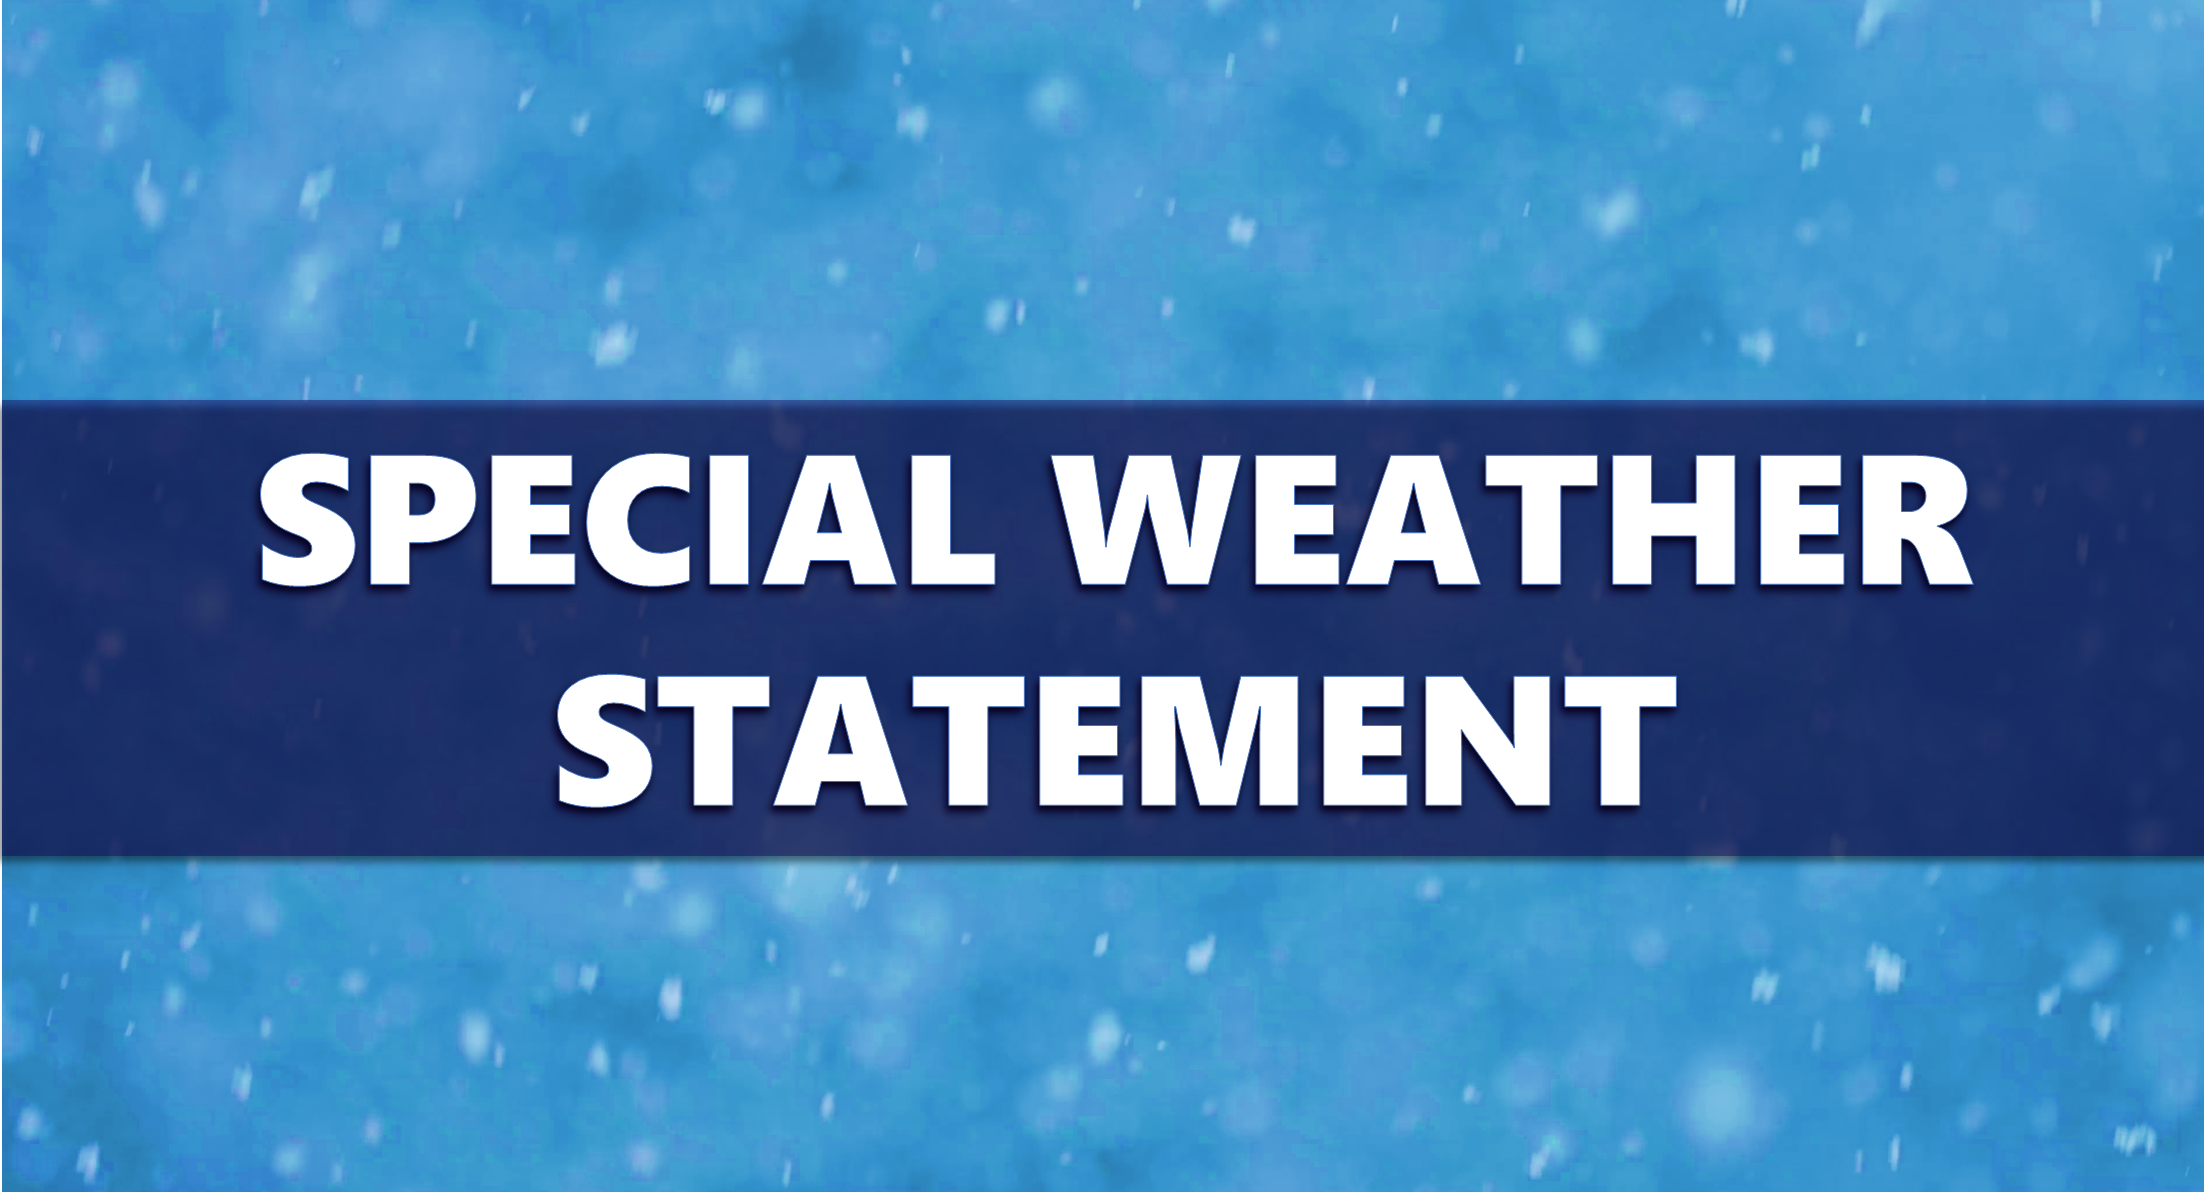 SPECIAL WEATHER STATEMENT:  NWS Warns of Winter Mix Overnight Tonight into Thursday Morning Commute